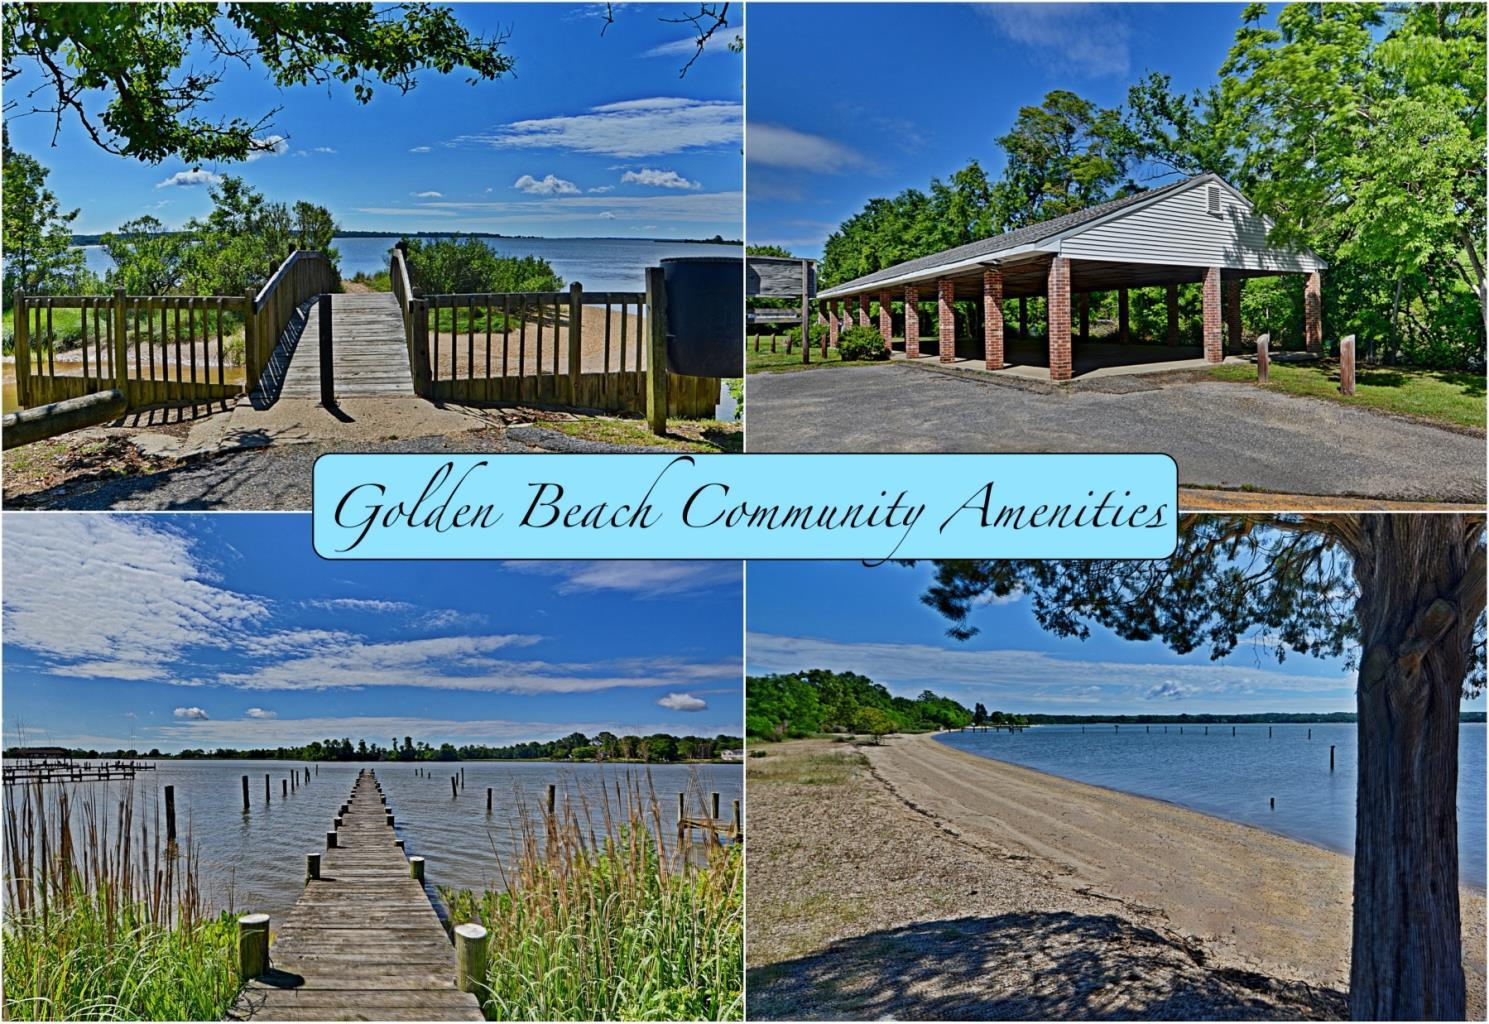 Golden Beach Amenities in Southern MD - Beaches, Boat Ramps, Fishing Piers and More!  Call Marie Lally, Your Southern MD Realtor at 301-748-8698